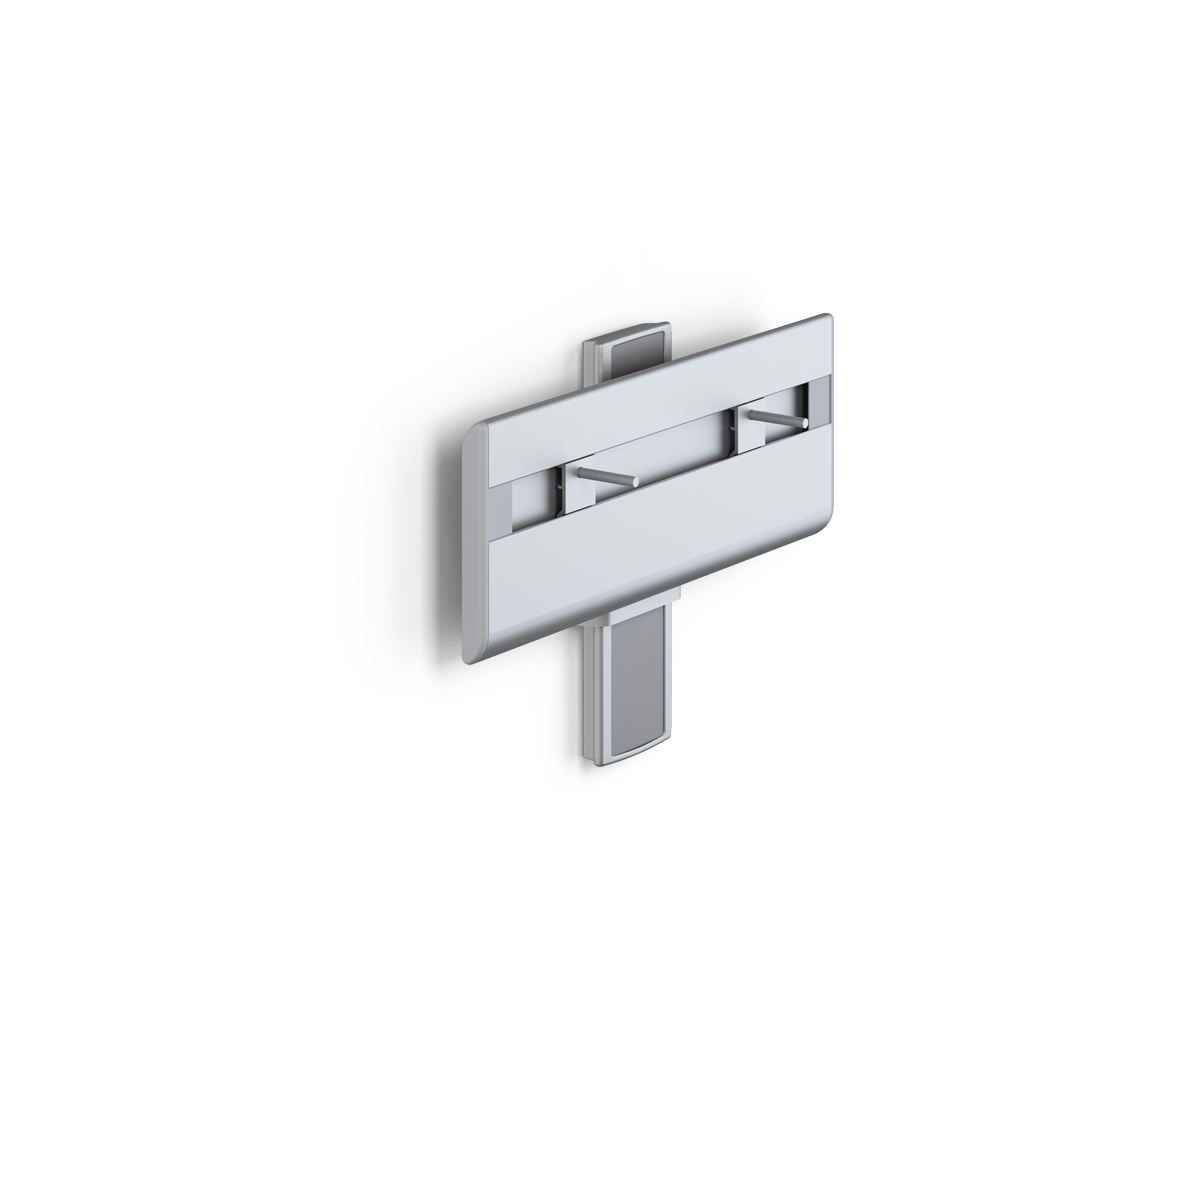 PLUS wash basin bracket with lever control, manually height adjustable